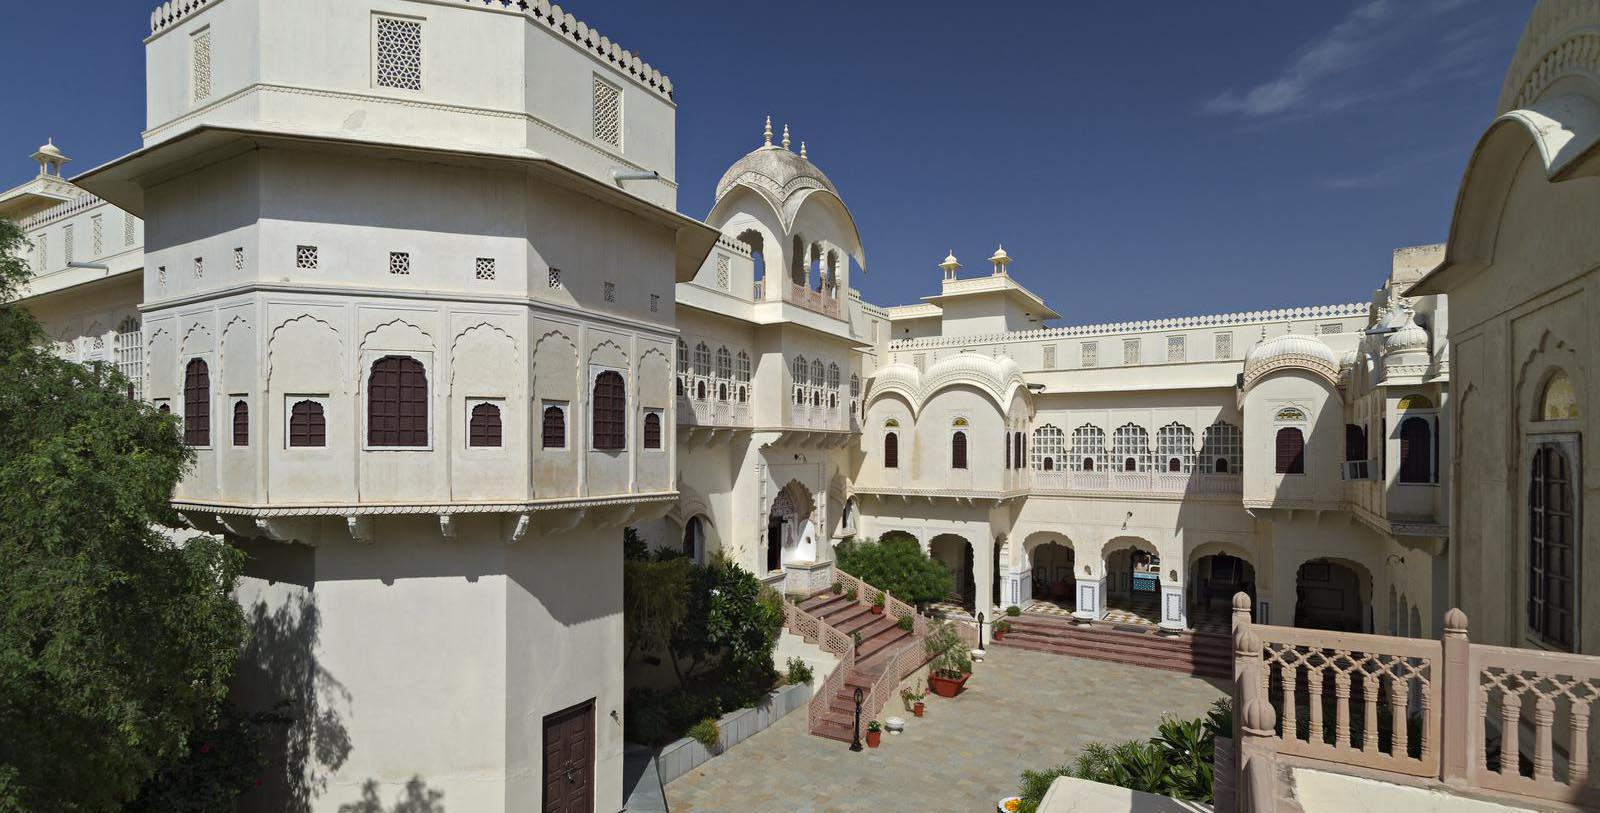 Image of hotel exterior Alsisar Mahal, 1800s, Member of Historic Hotels Worldwide, in Jhunjhunu, India, Overview